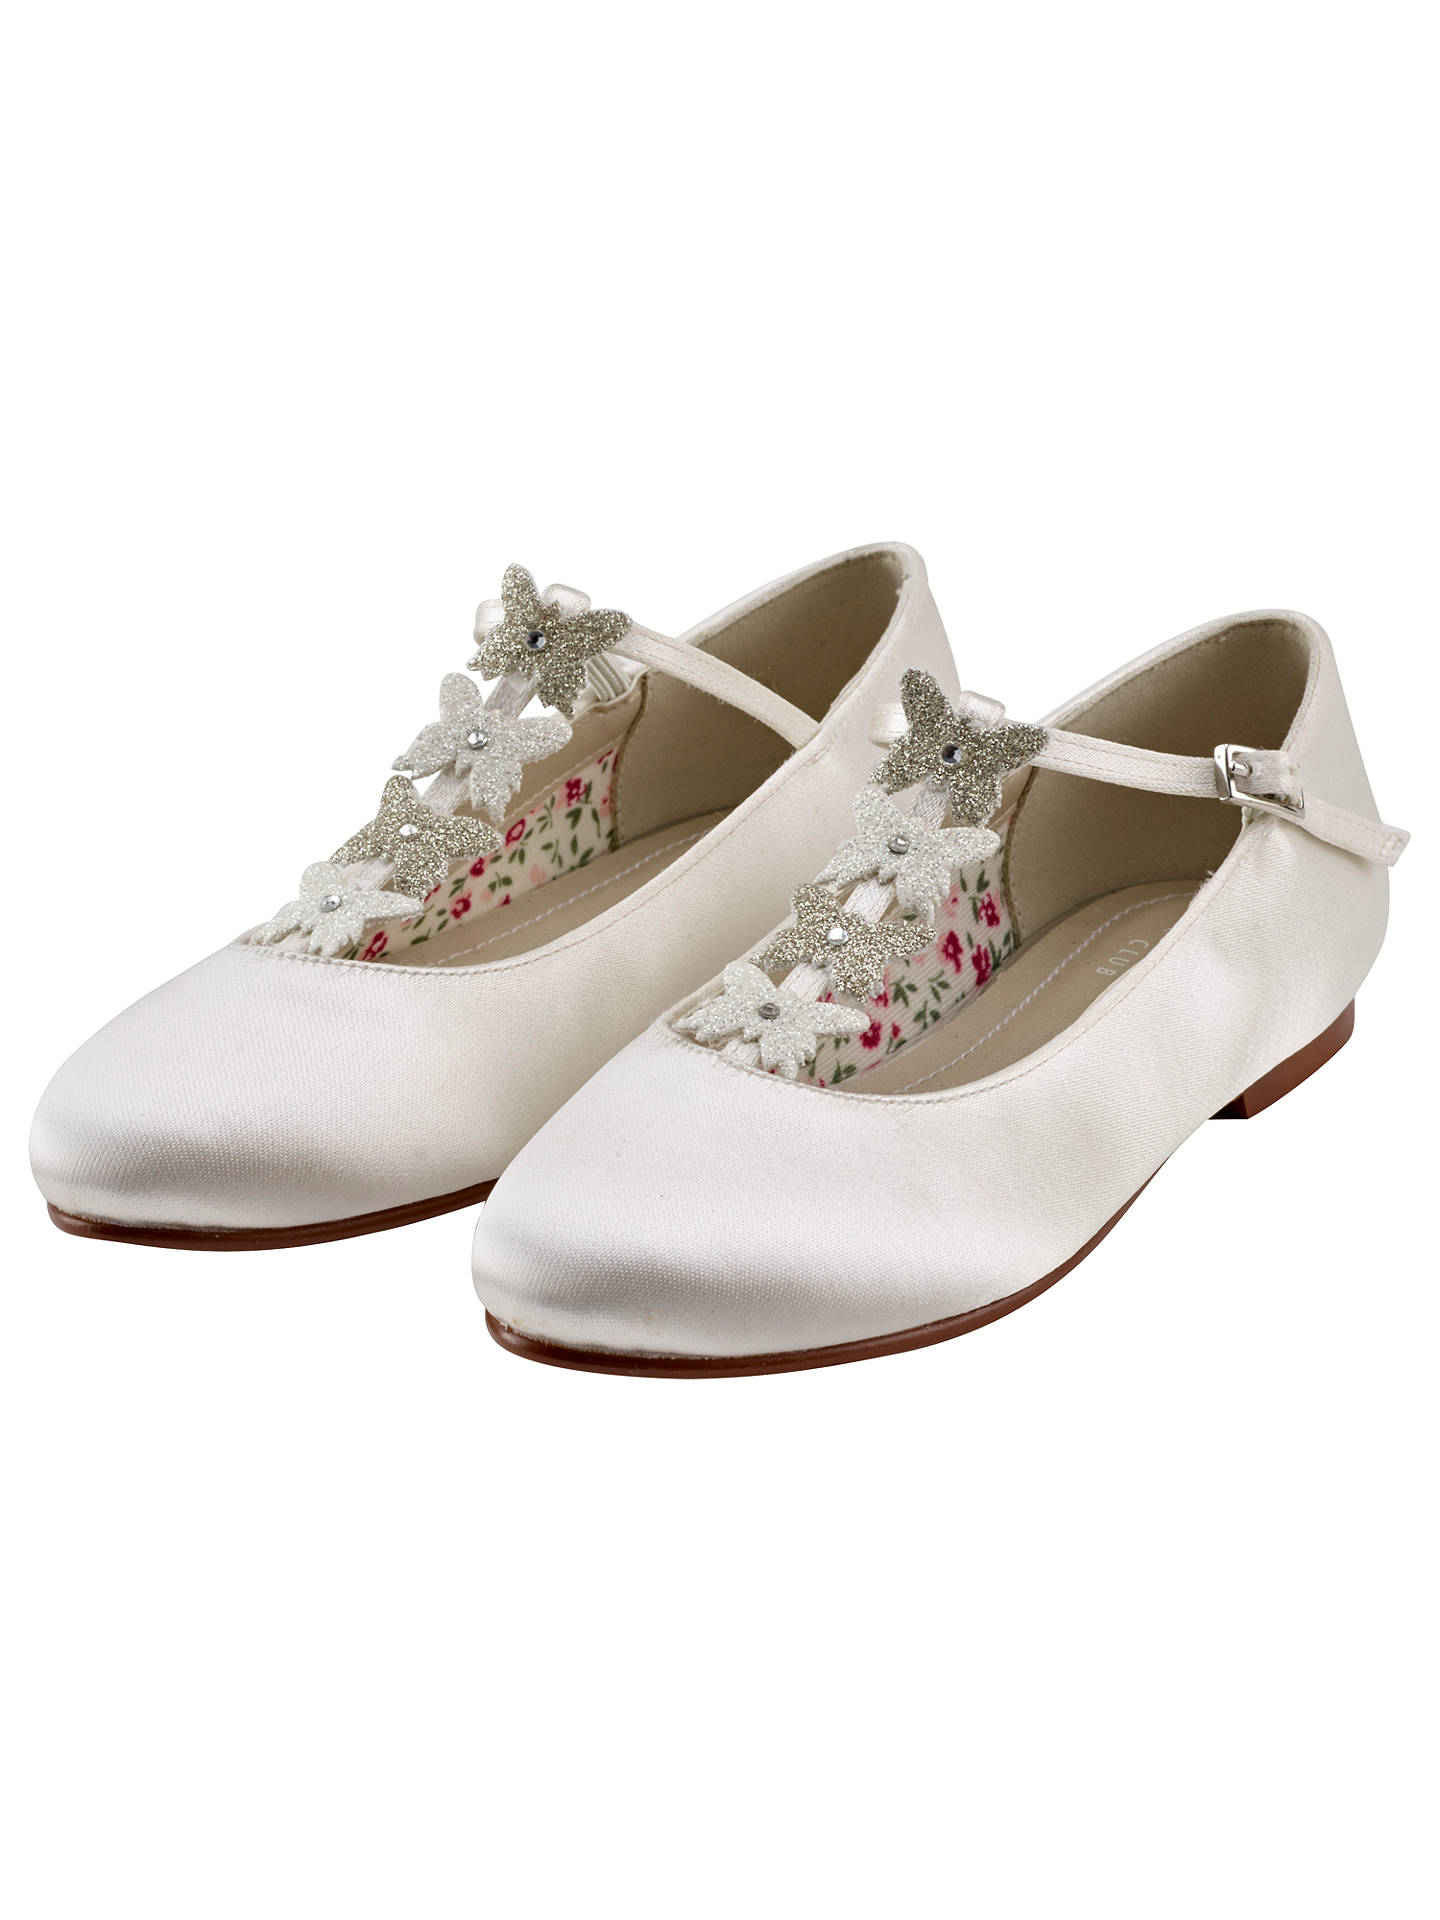 BuyRainbow Club Kady Bridesmaids' Shoes, Ivory, 6 Jnr Online at johnlewis.com